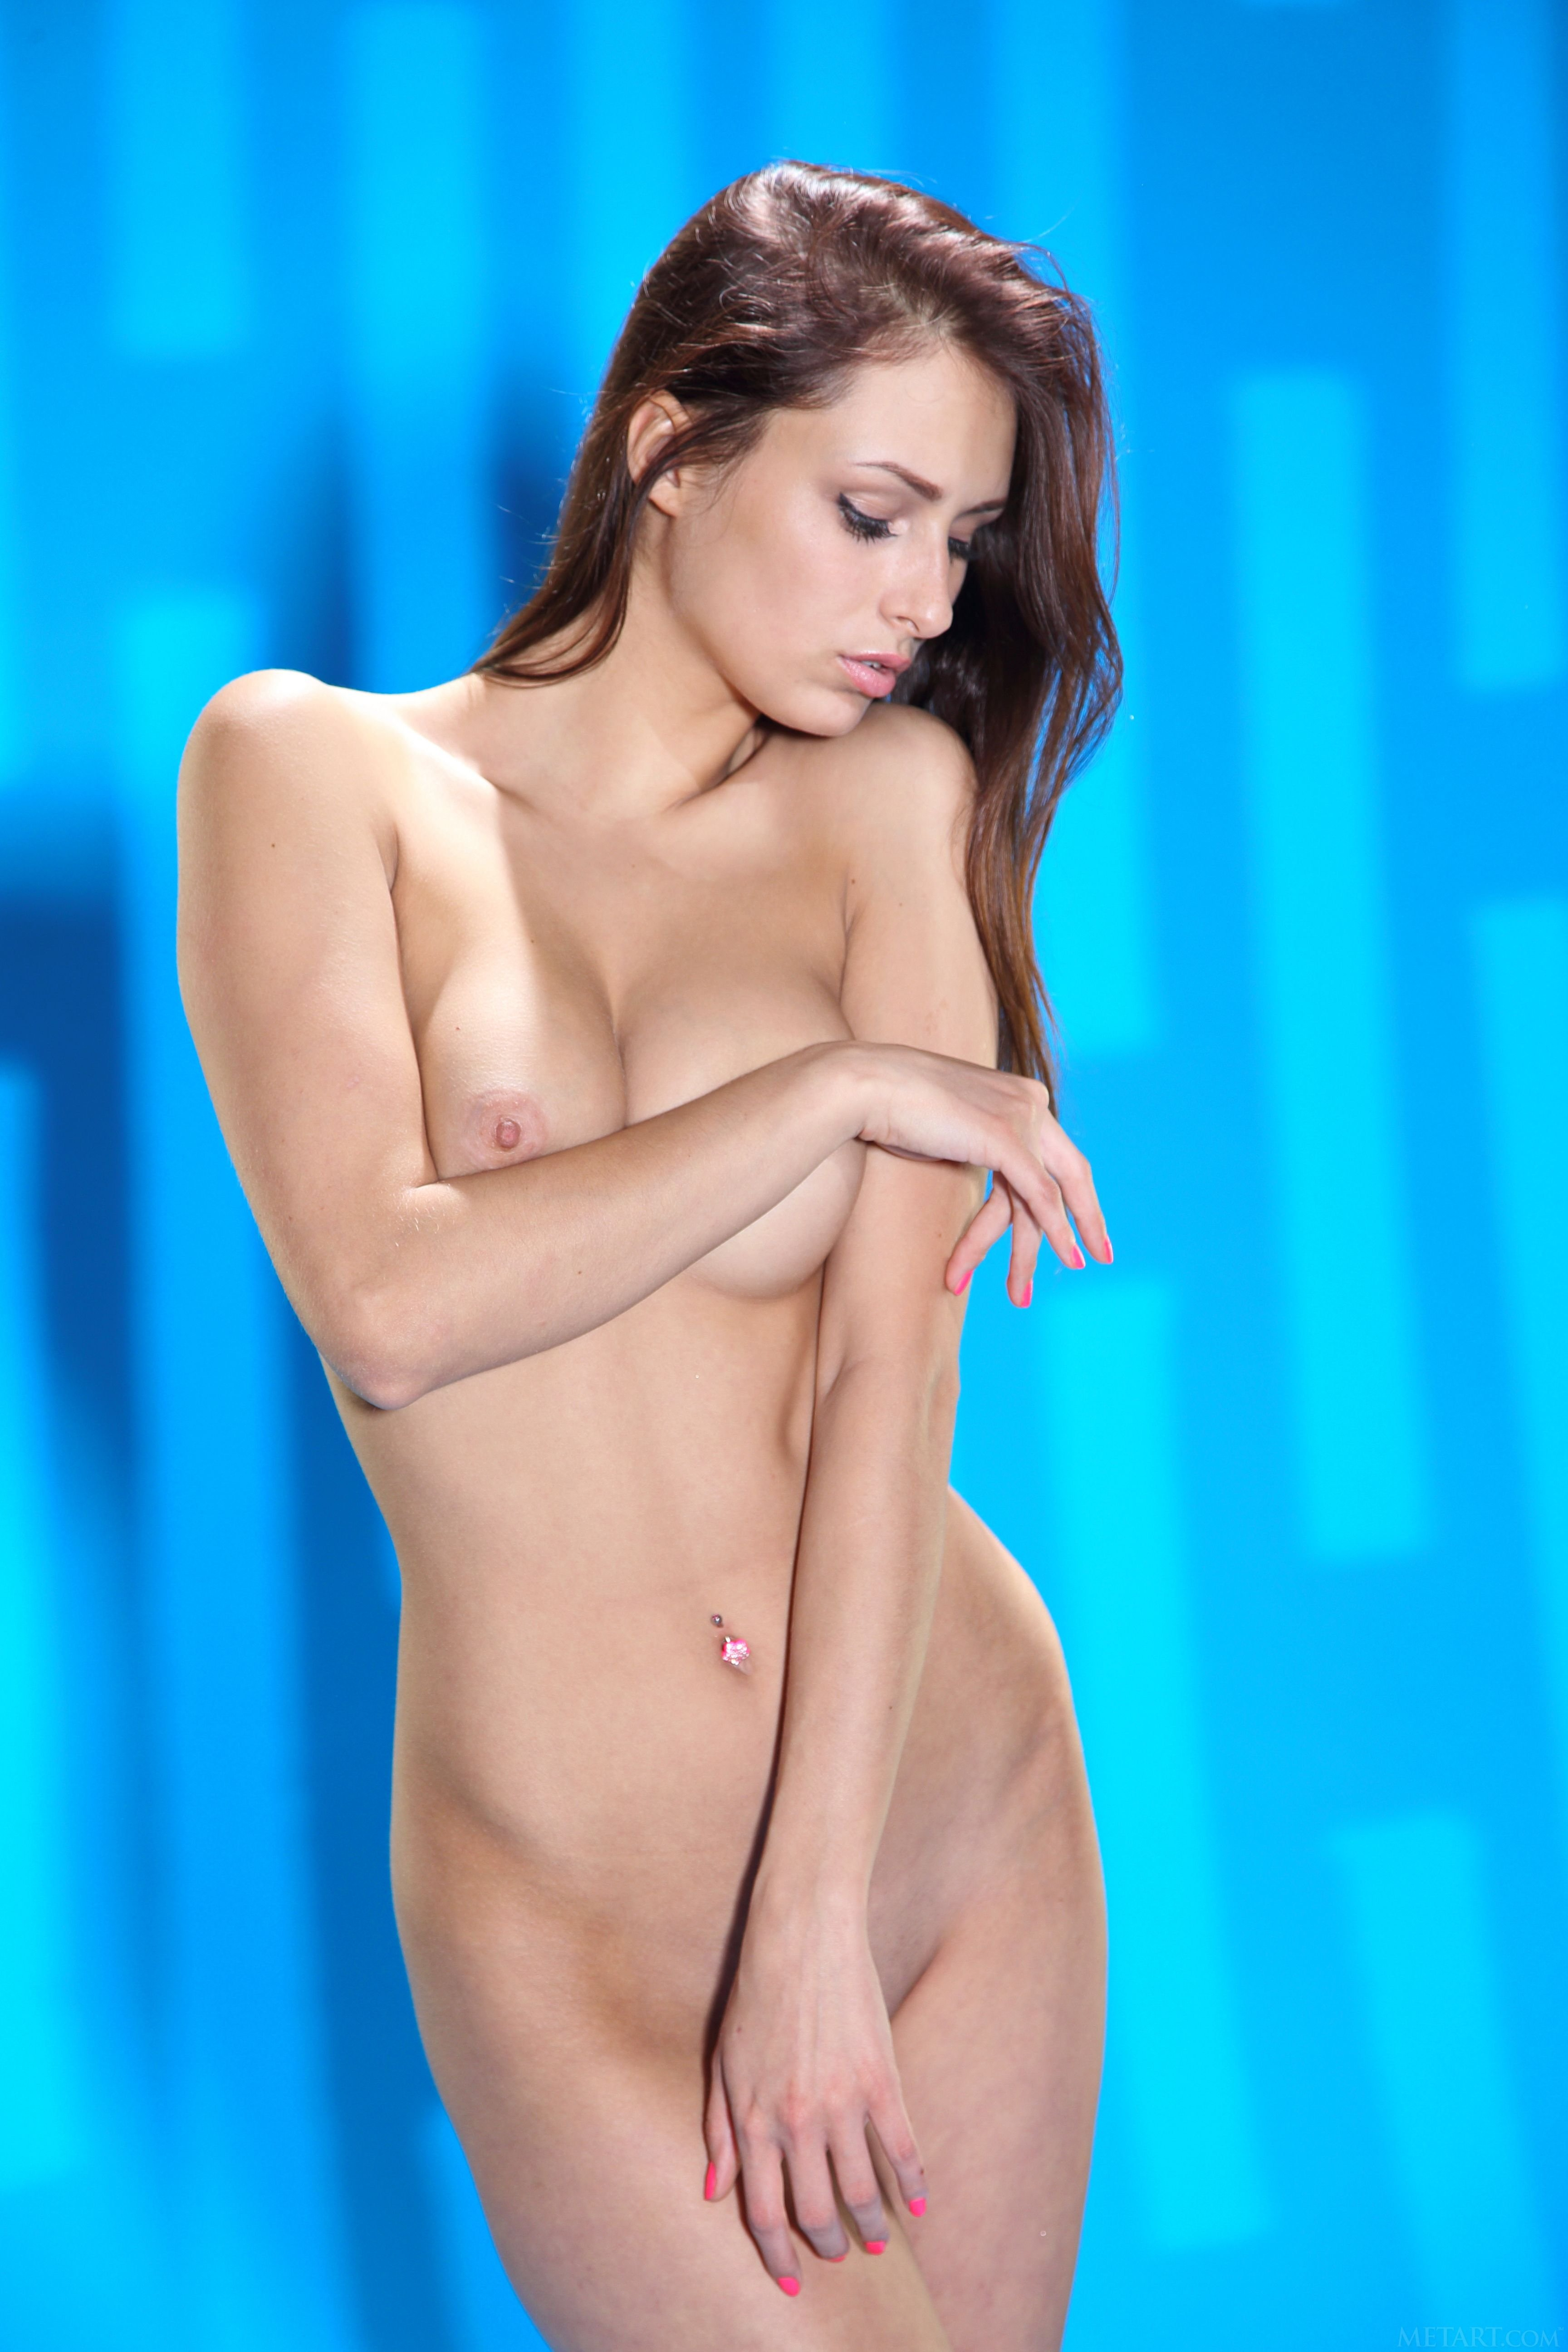 gorgeous-shaved-brunette-babe-yarina-a-with-perfect-breasts-from-met-art-11.jpg